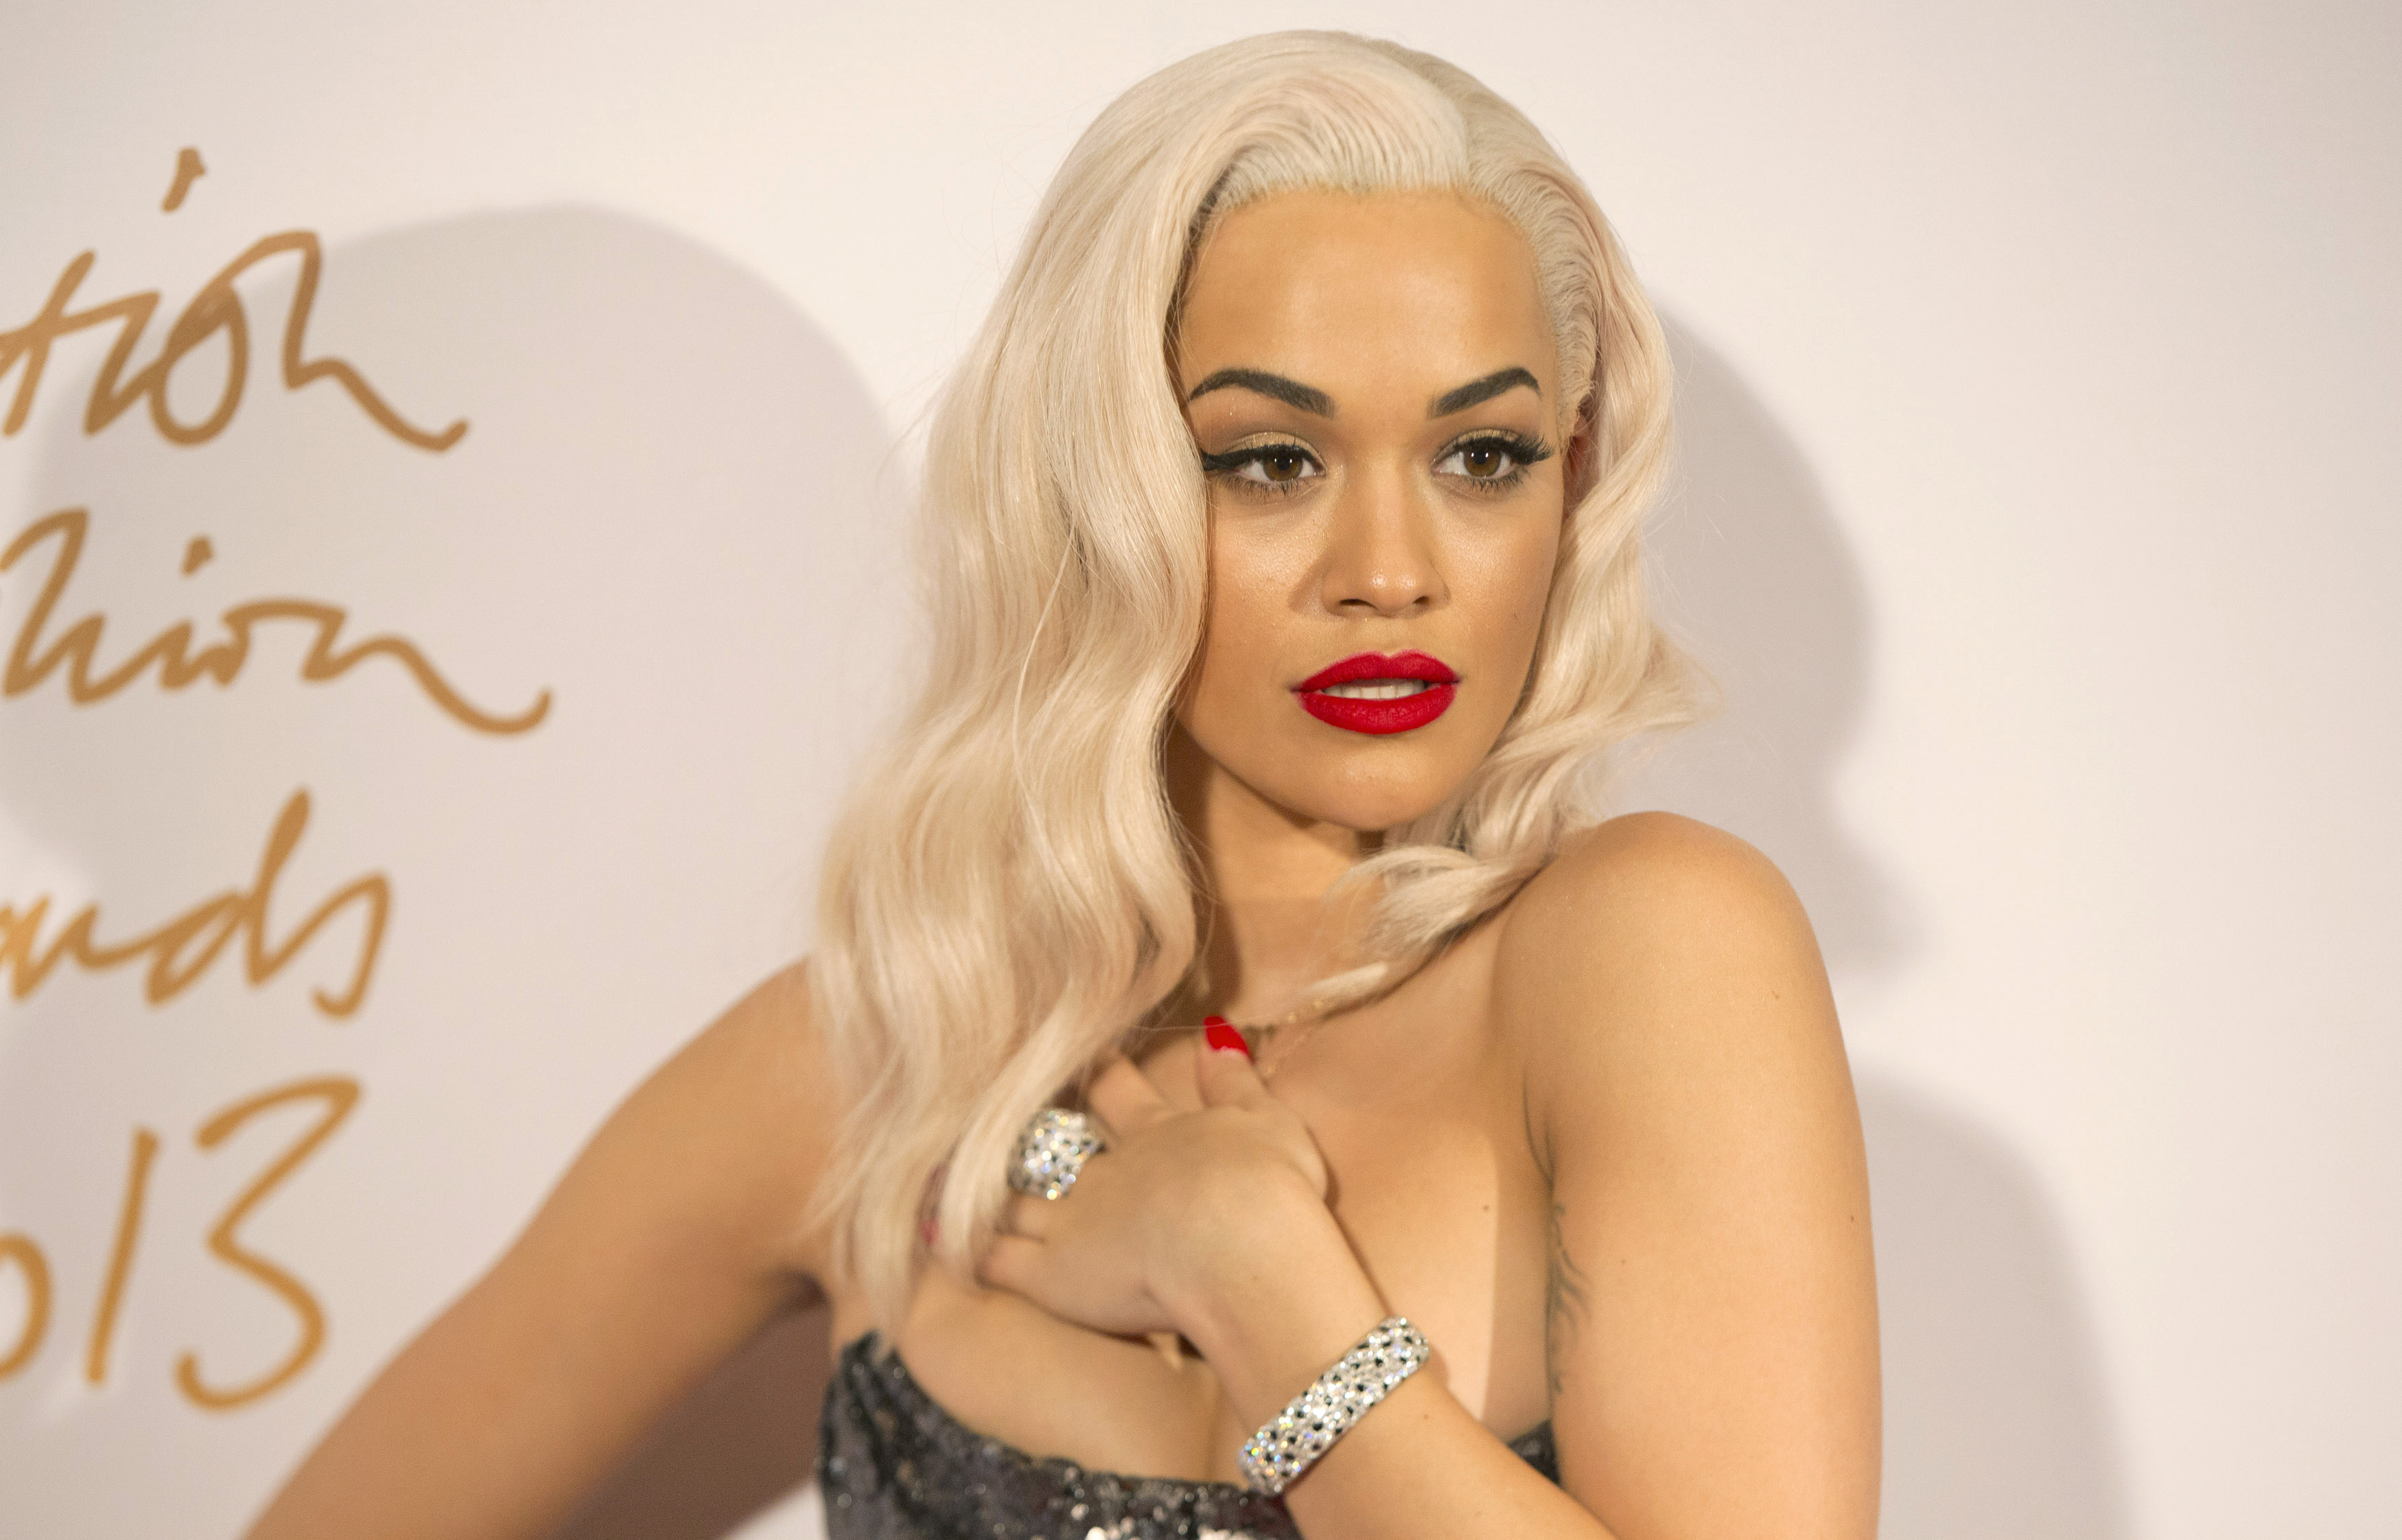 British Singer Rita Ora Flashes Her Nipples In A Sexy Outfit: Ready For The Sizzling Photoshoot